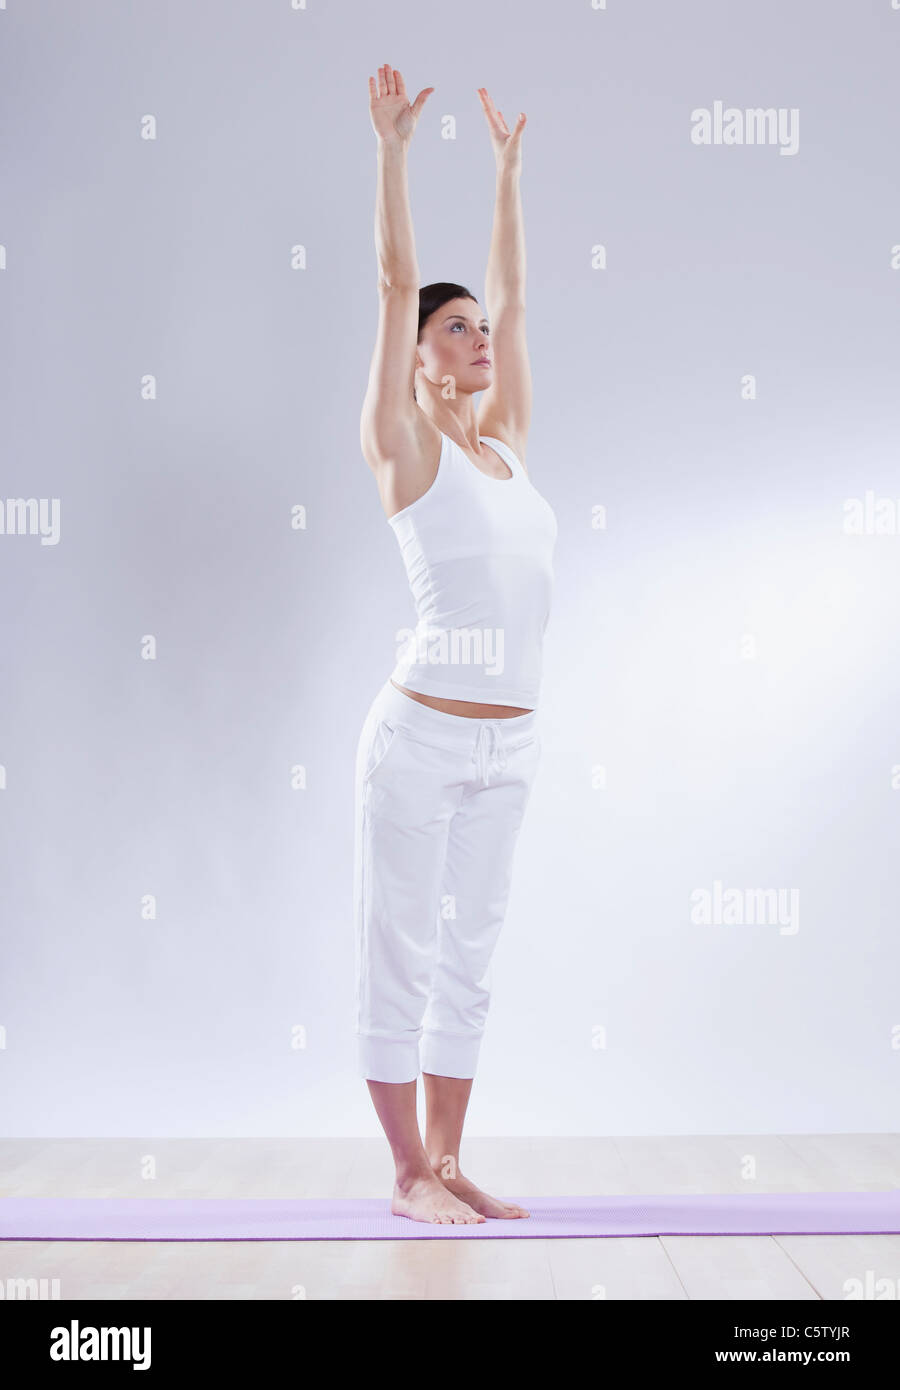 Mid adult woman in mountain pose against white background - Stock Image